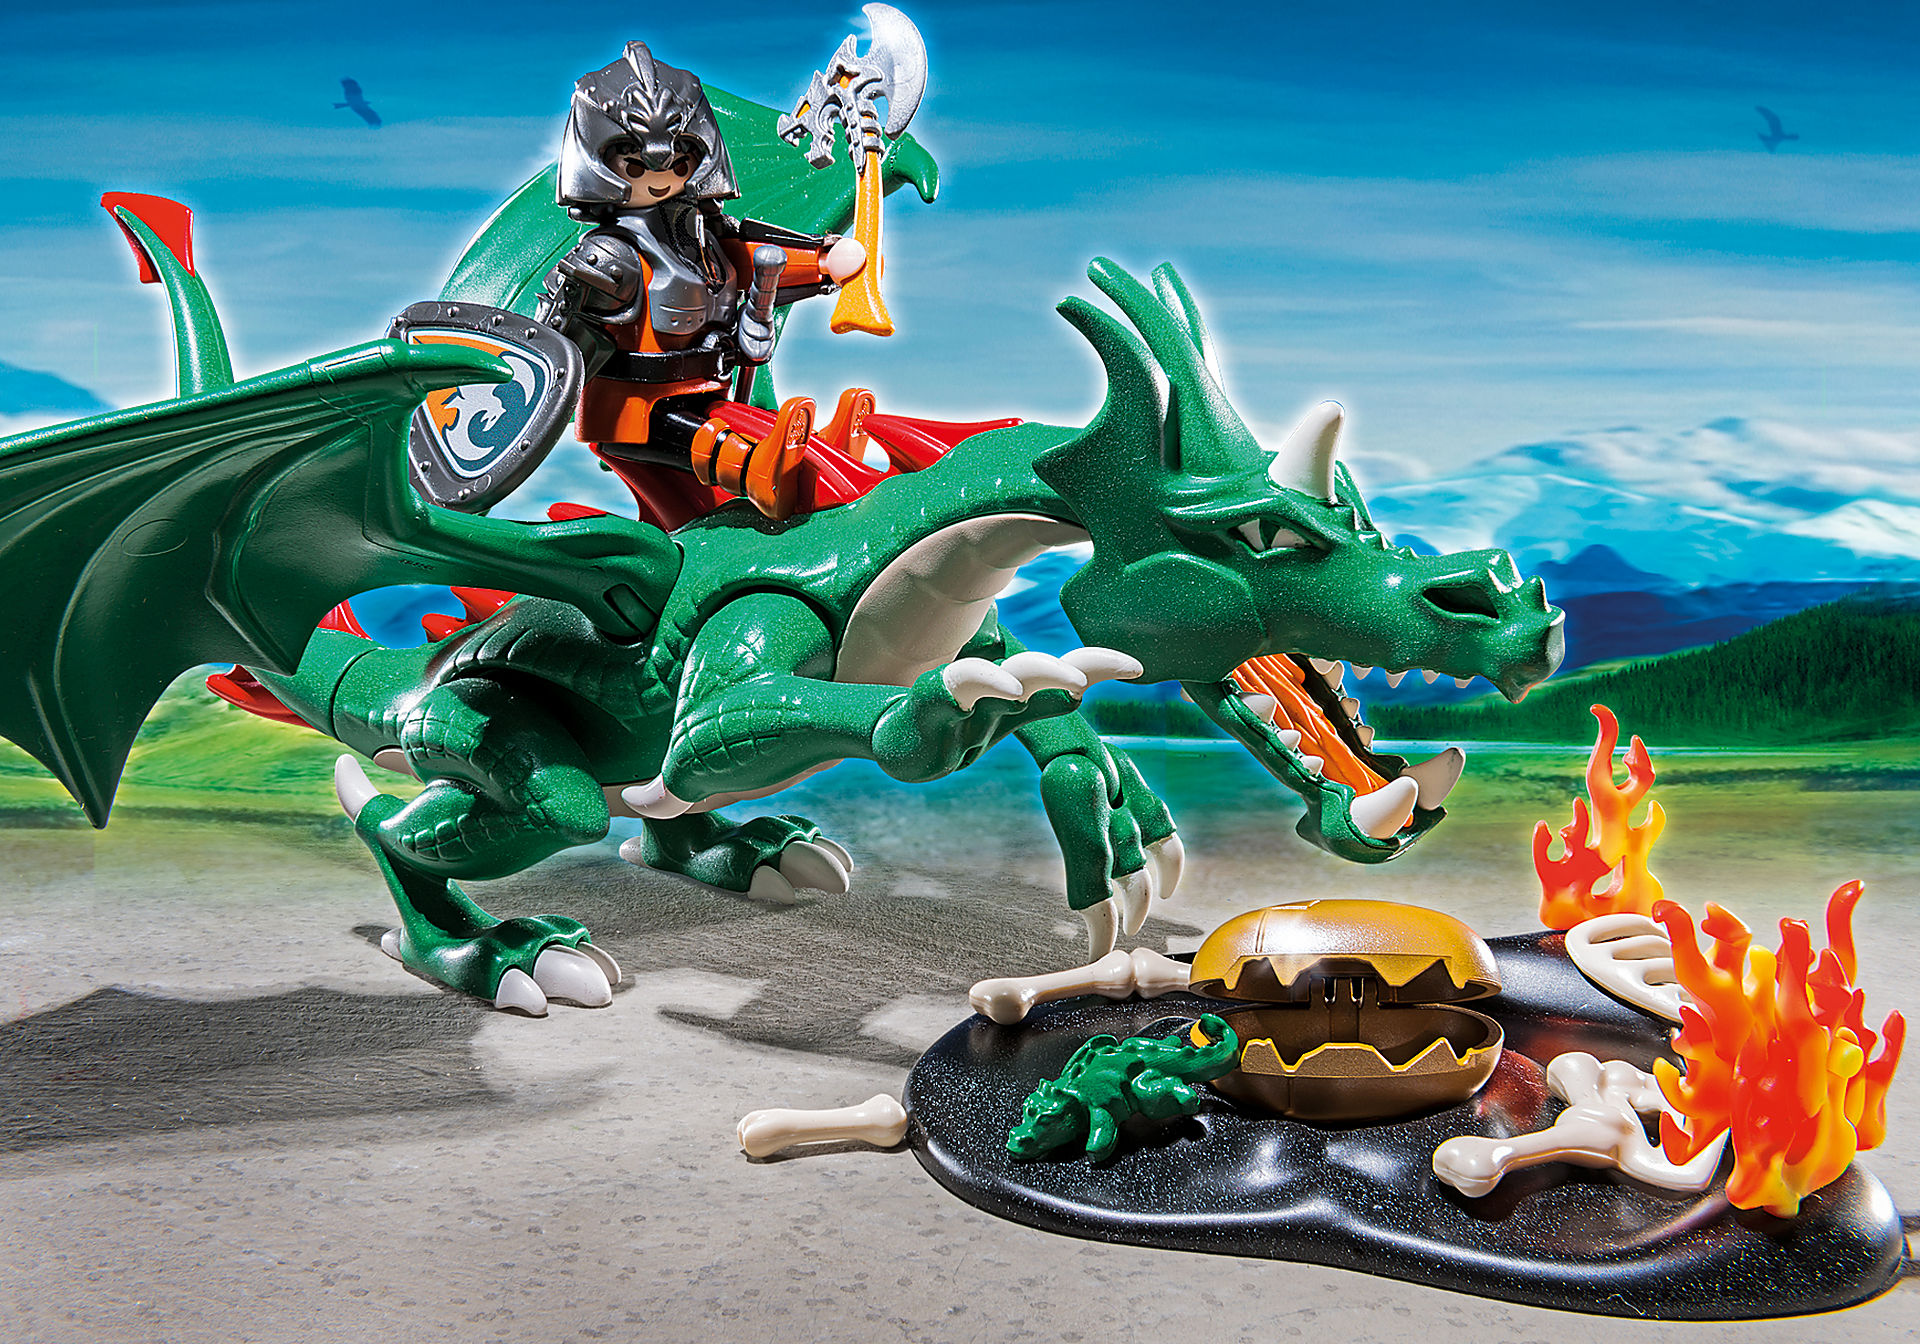 http://media.playmobil.com/i/playmobil/6003_product_extra1/Chevalier avec grand dragon vert